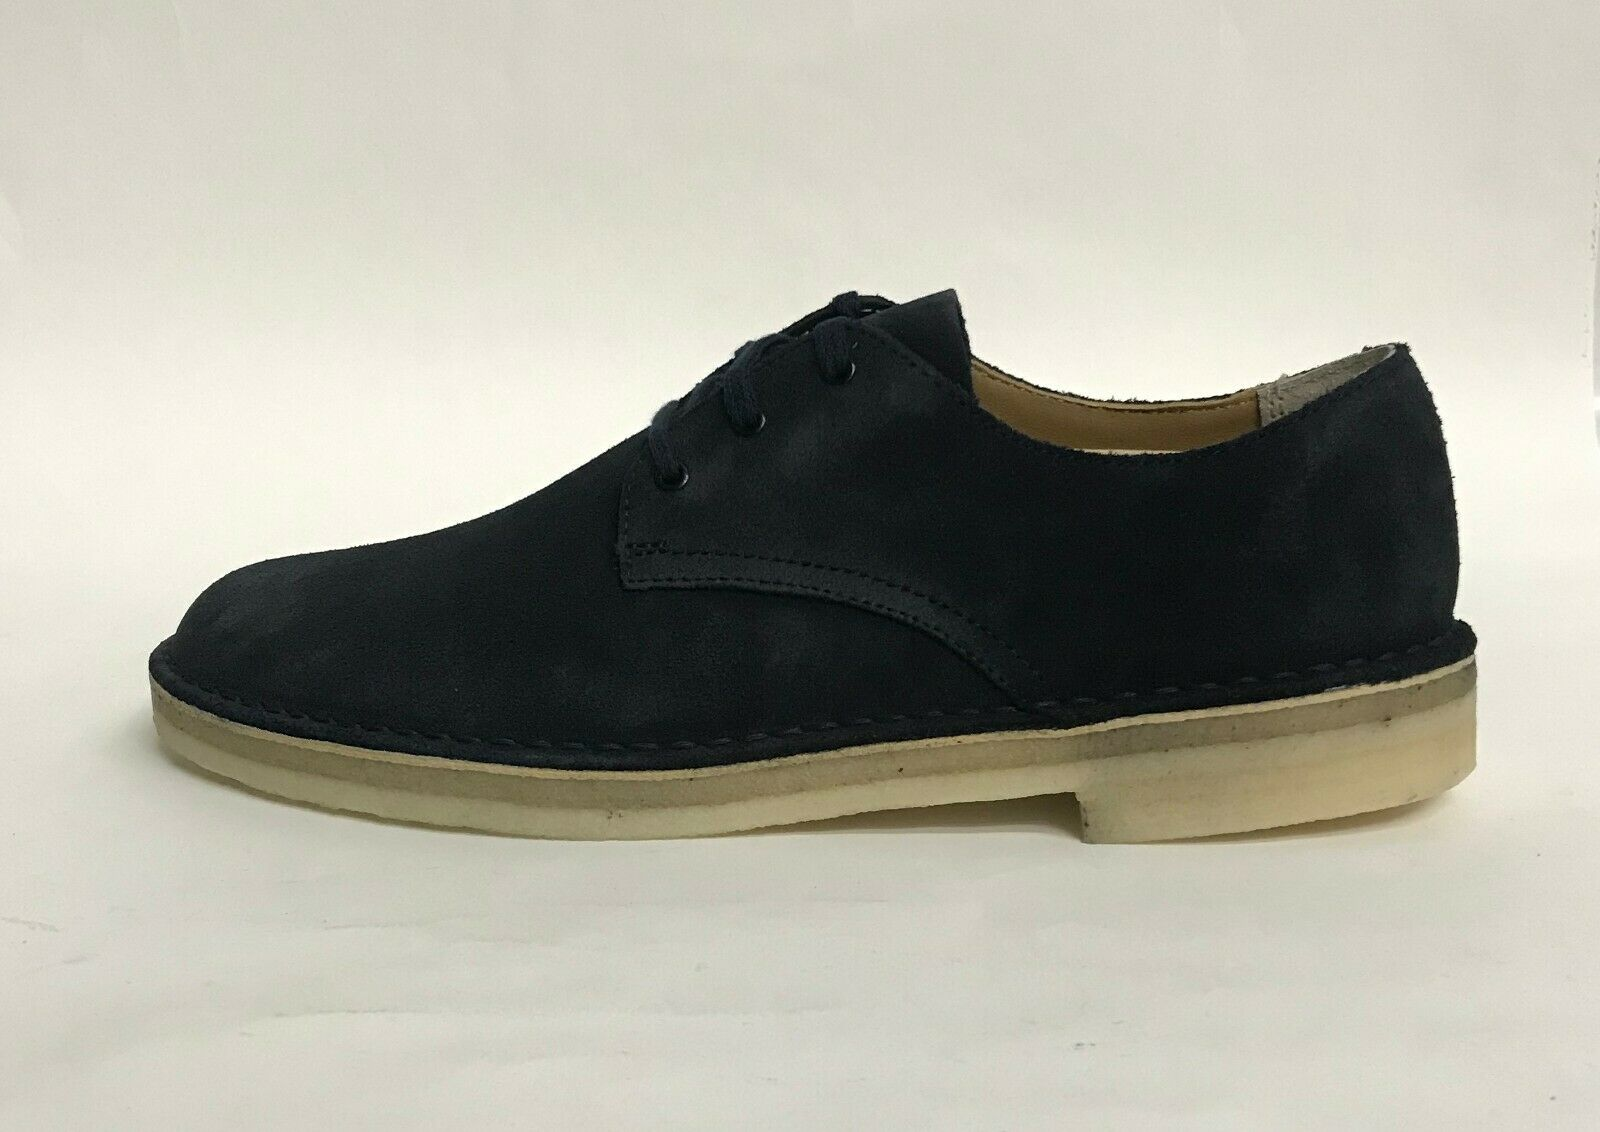 NIB MENS SIZE 10 CLARKS DESERT CROSBY LEATHER SHOES MIDNIGHT NAVY 33709